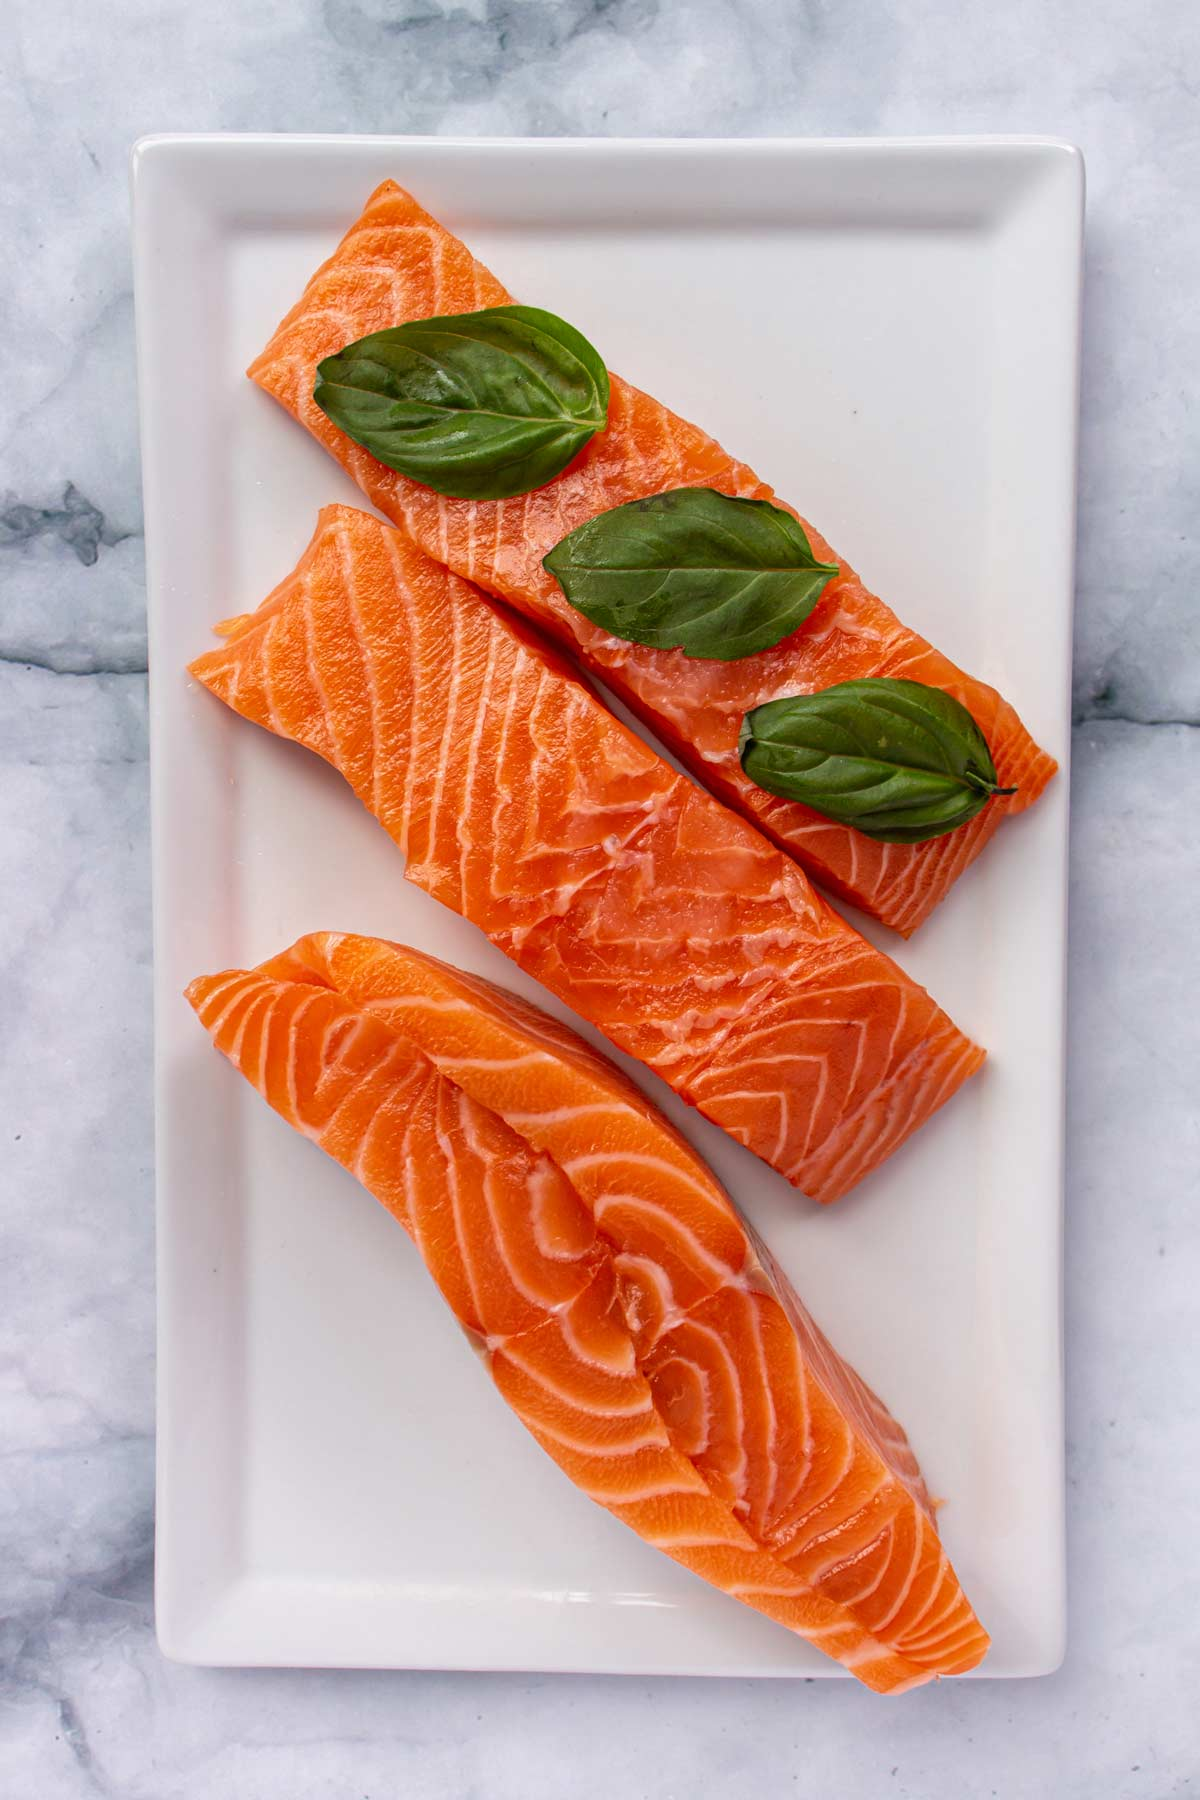 Assembling salmon fillets with basil sandwiched between them on a white plate.